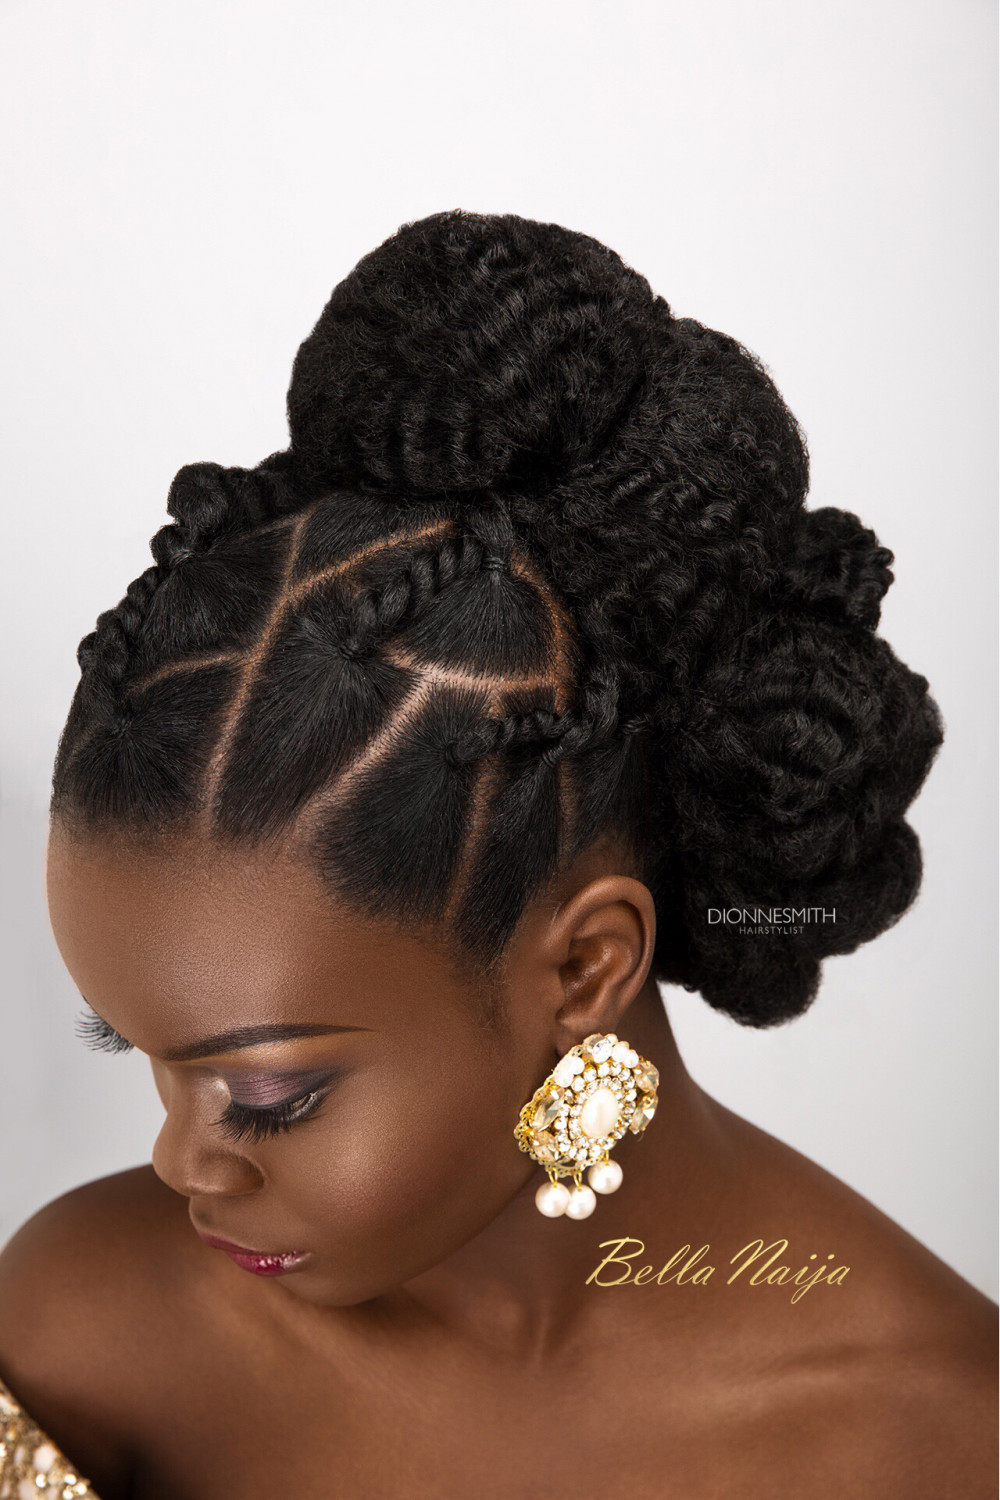 Best ideas about Hairstyle With Natural Hair . Save or Pin BN Bridal Beauty International Bridal Hair Specialist Now.